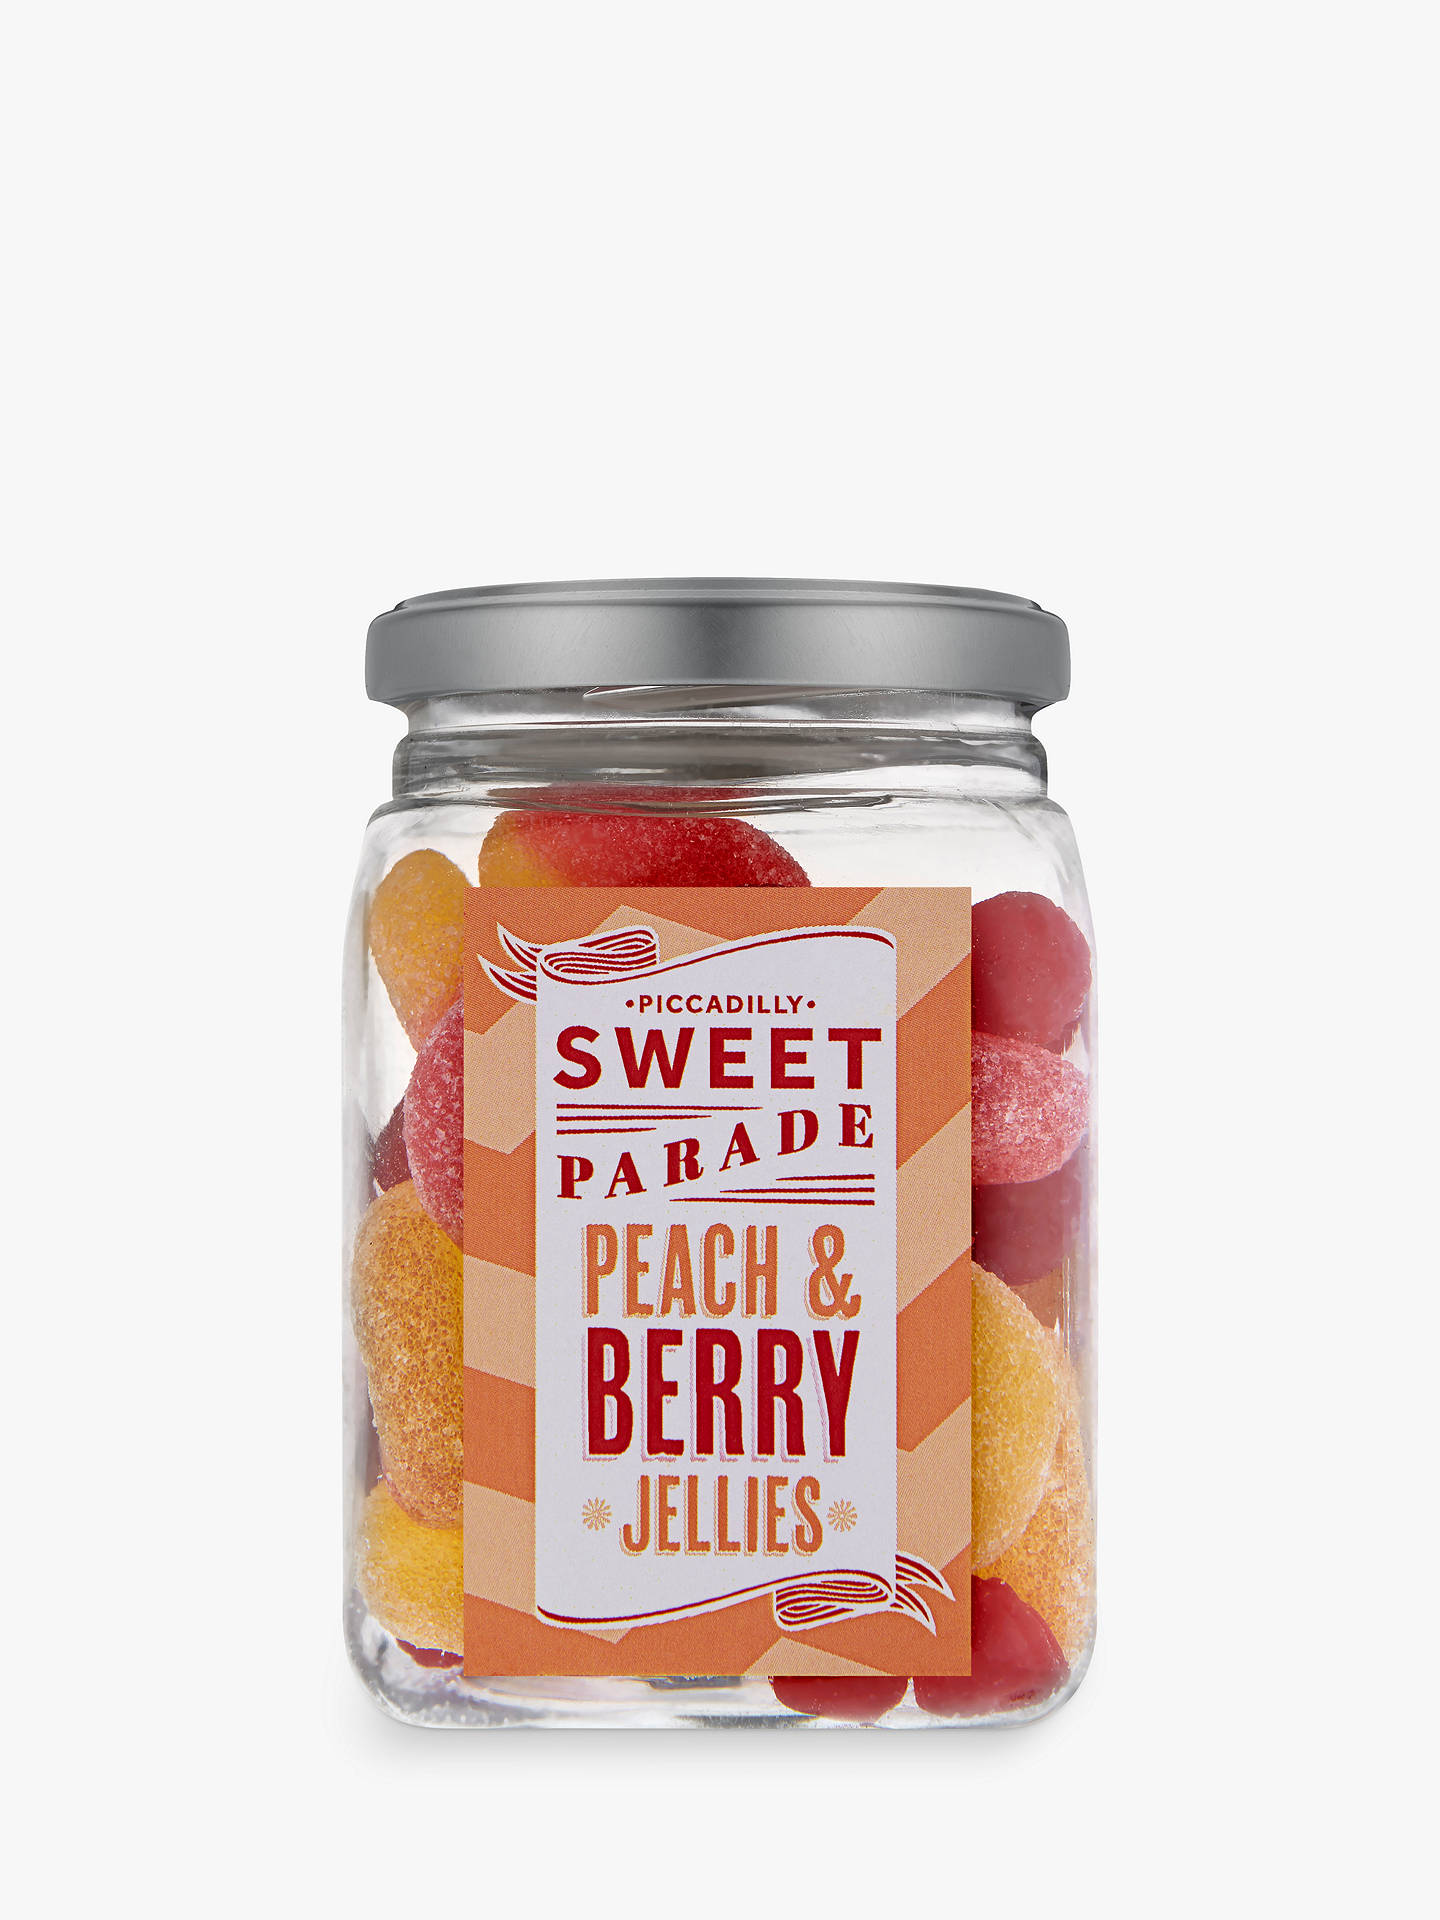 Buy Piccadilly Sweet Parade Peach & Berry Jellies Jar, 230g Online at johnlewis.com